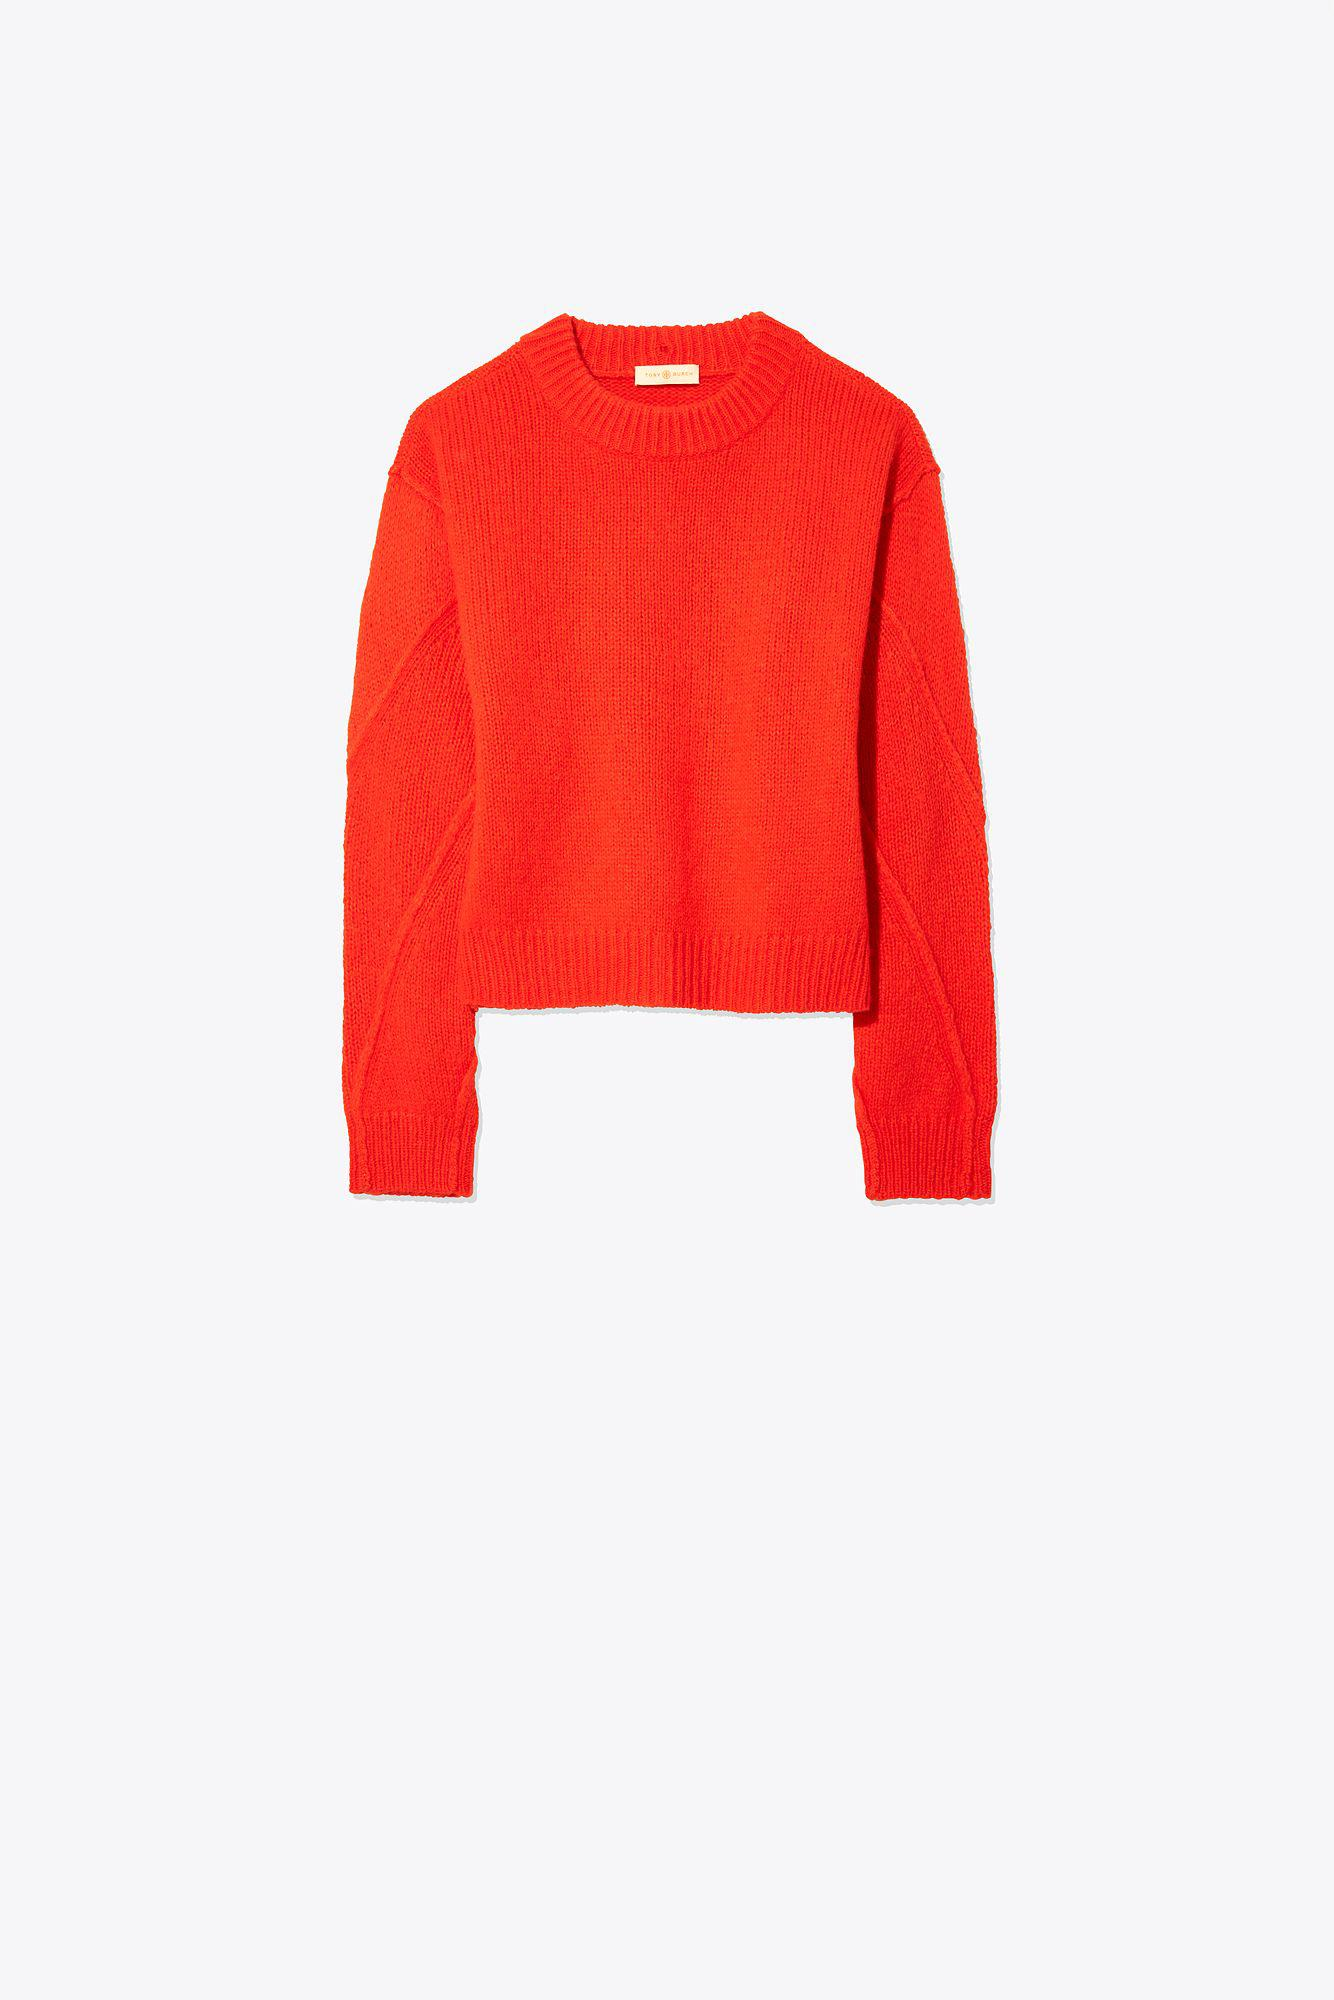 7297ef8e1b Tory Burch Eva Convertible Sweater in Red - Lyst